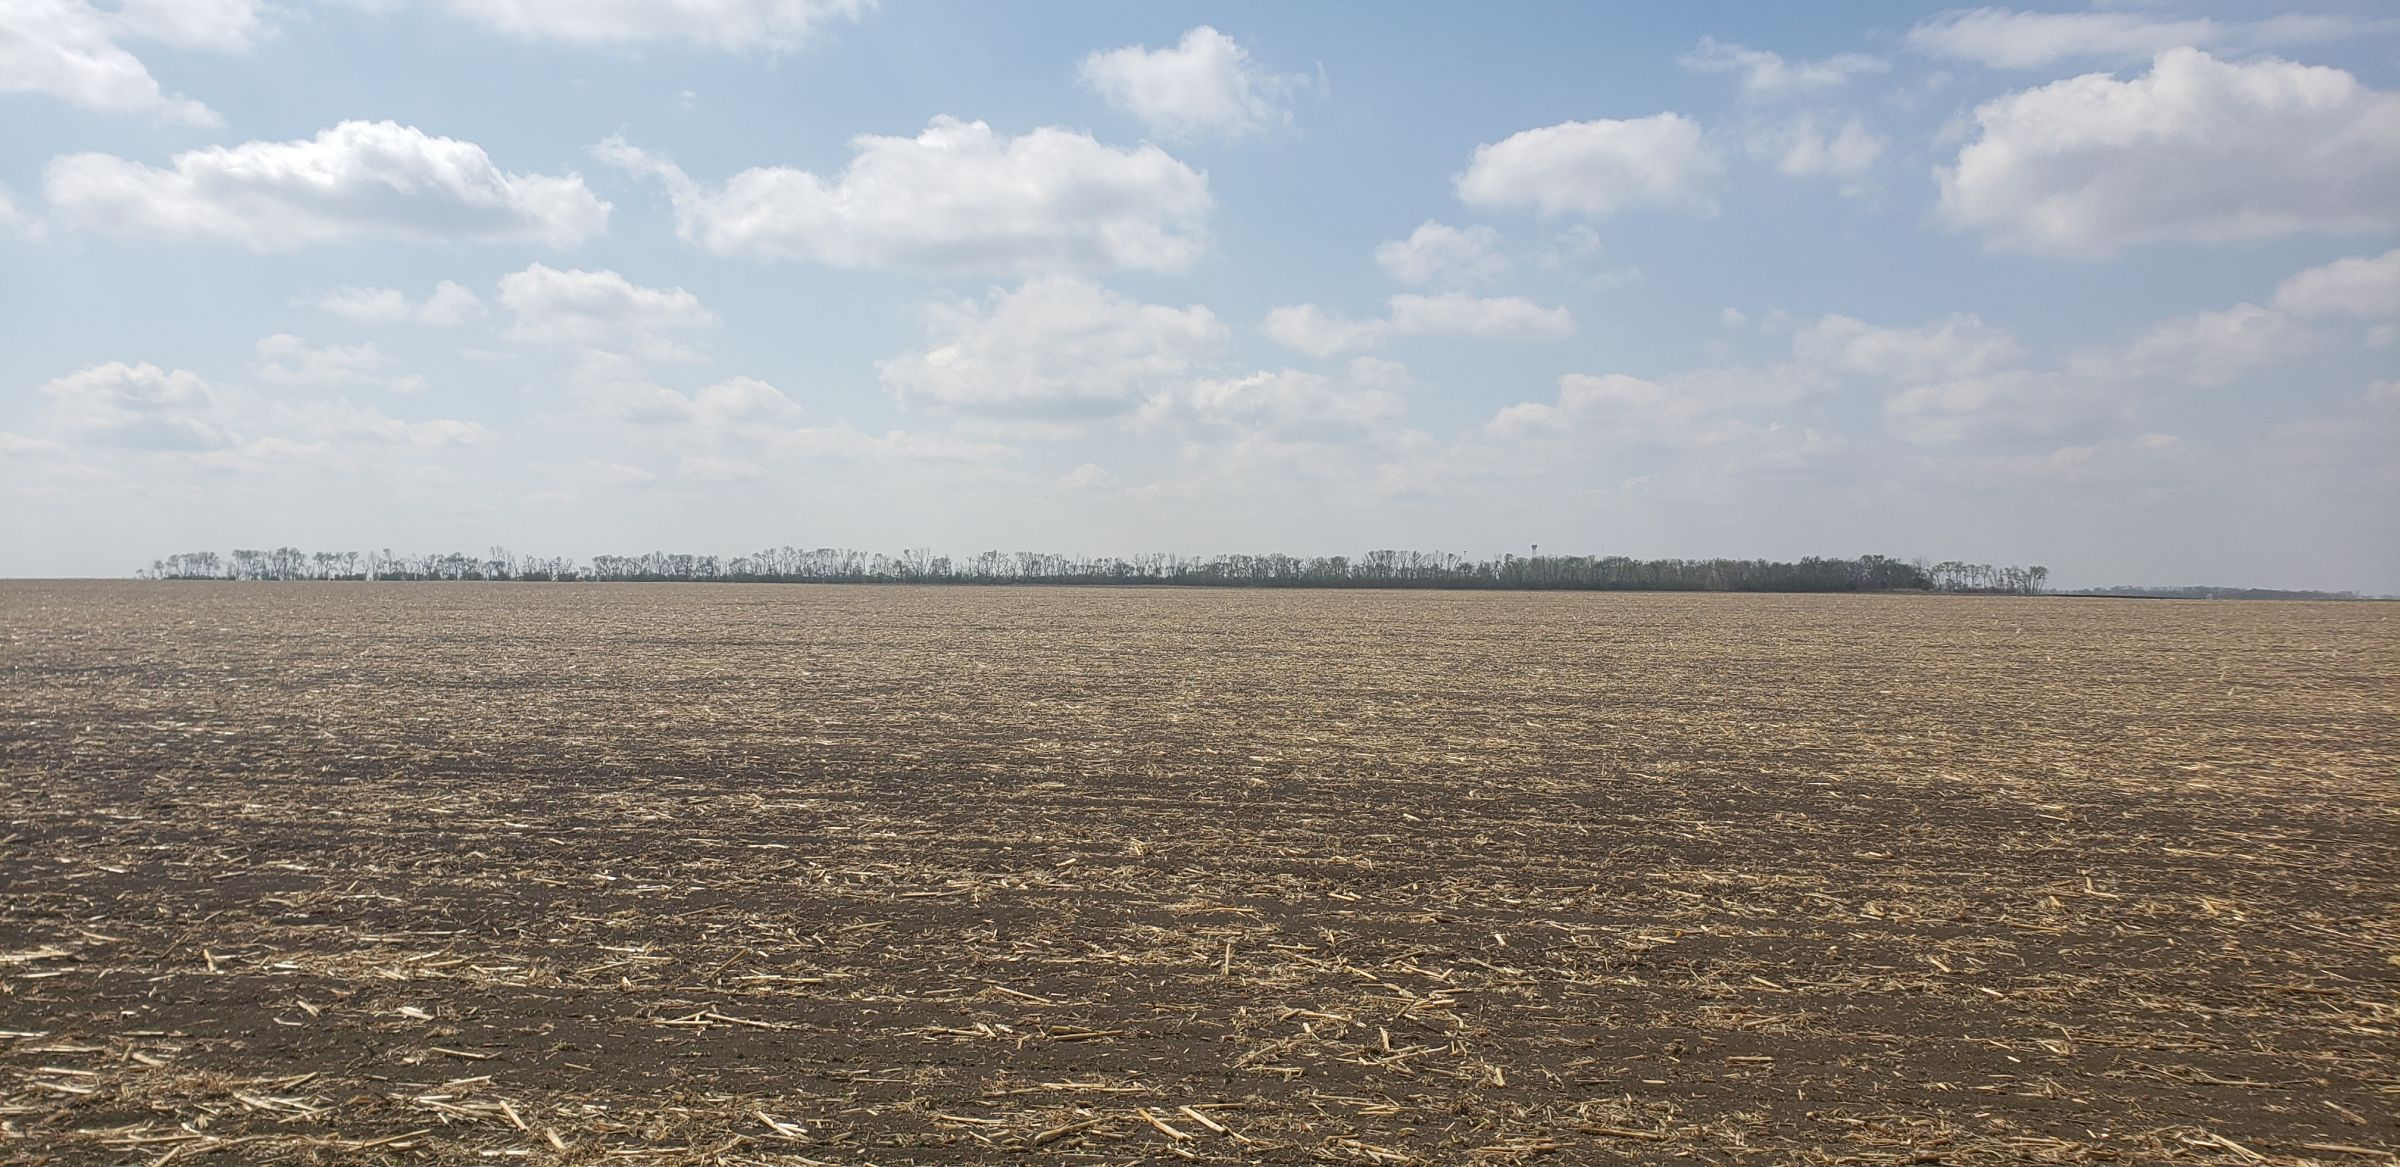 auctions-cass-county-north-dakota-157-acres-listing-number-15592-0-2021-06-16-180750.jpg